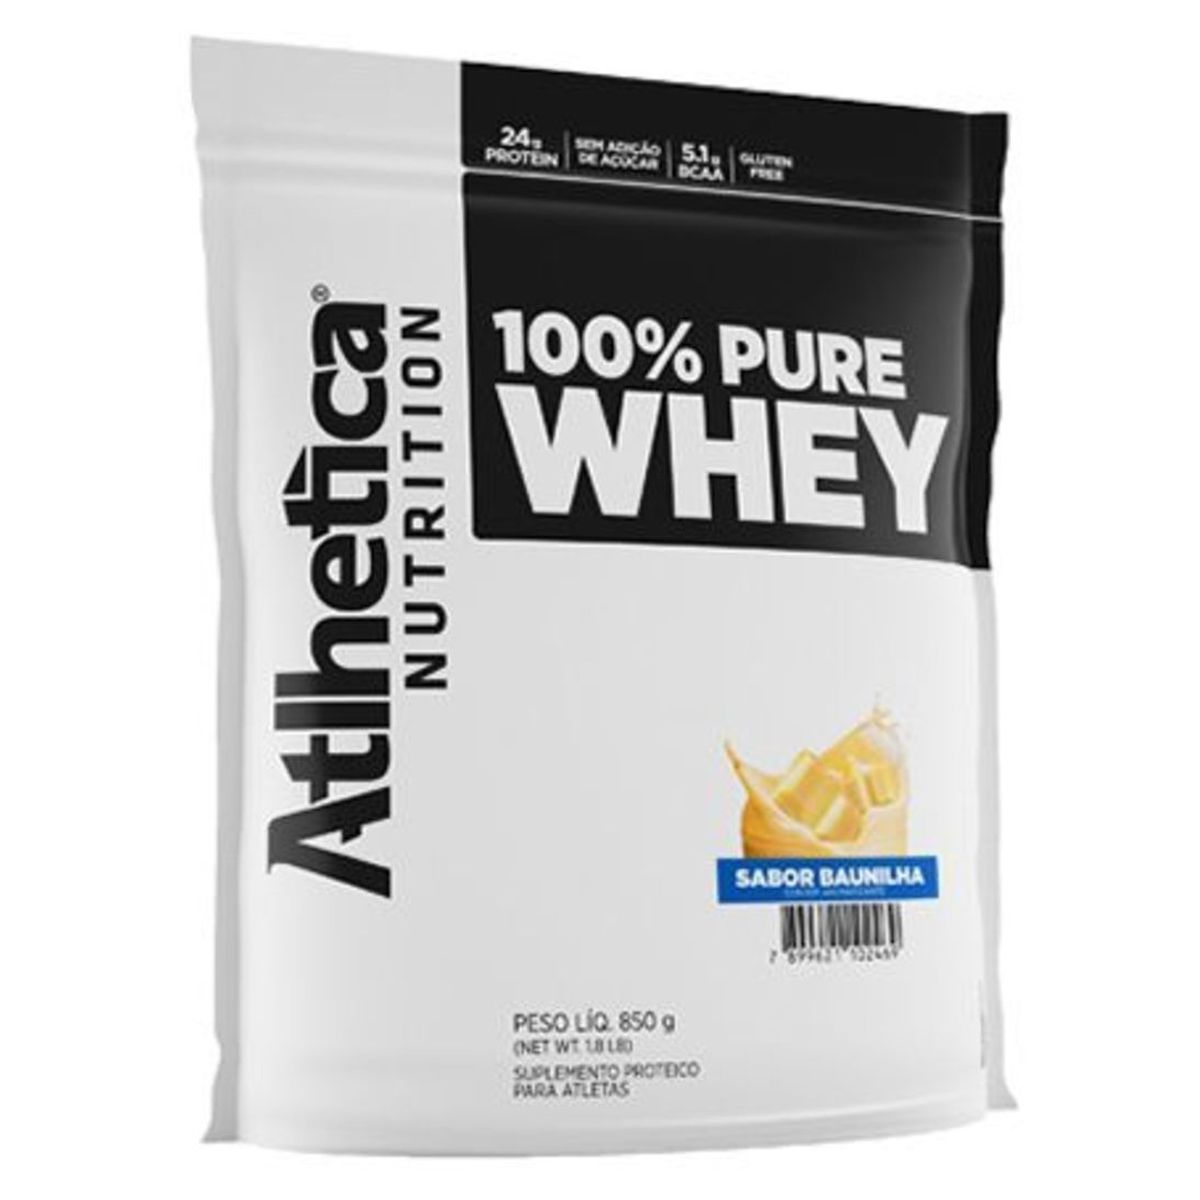 100% Pure Whey 850g - Atlhetica Nutrition